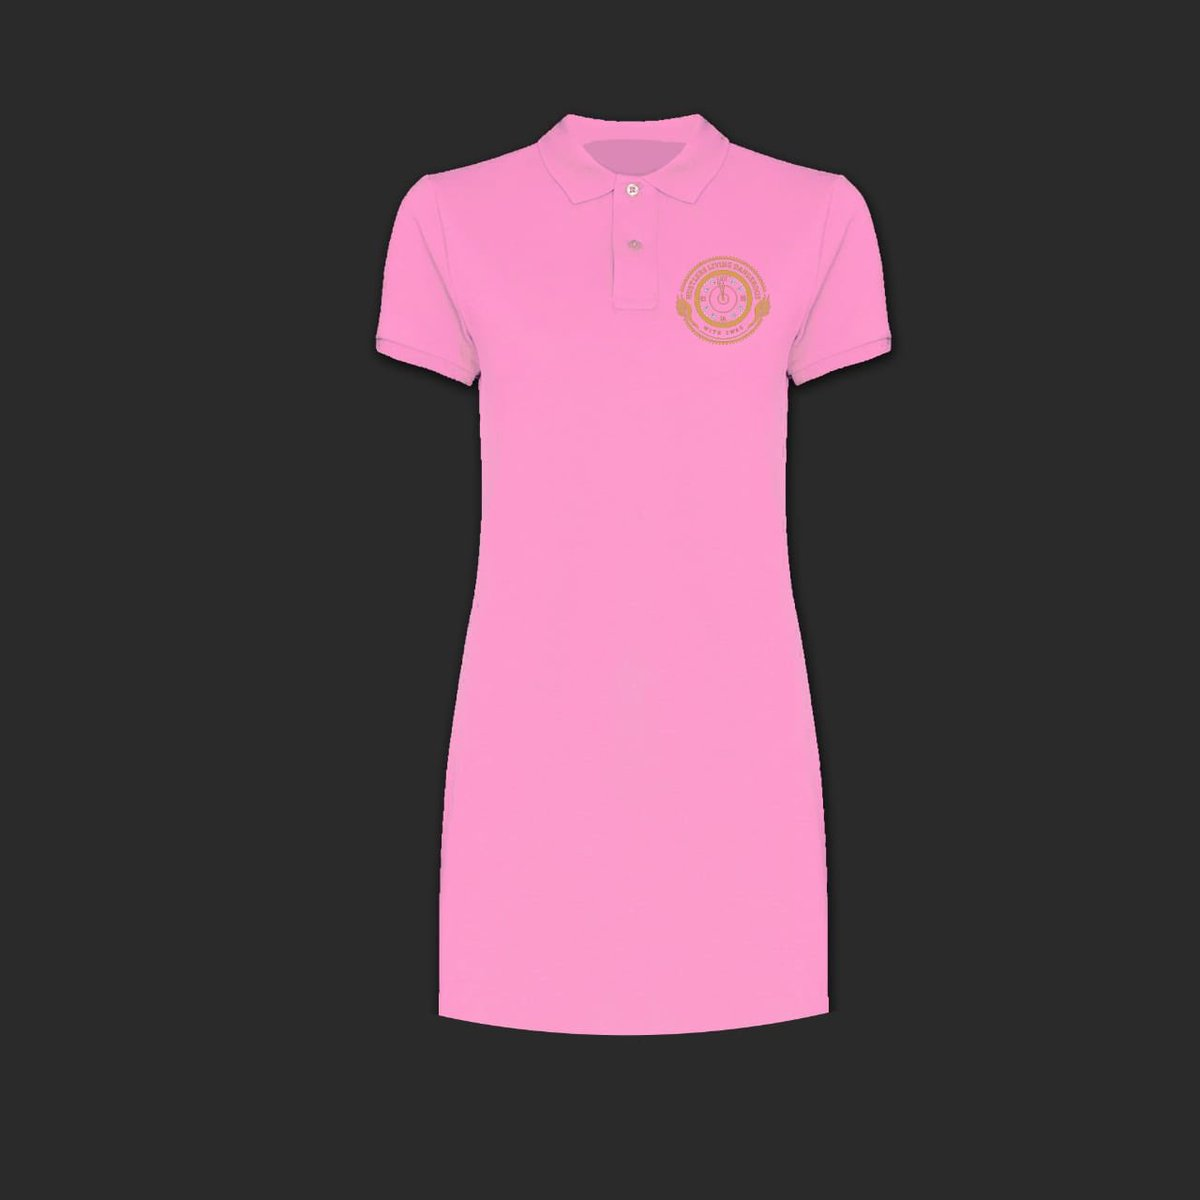 """I have always believed that fashion was not only to make women more beautiful, but also to reassure them, give them confidence."" – Yves Saint Laurent. Hustlers Ladies golf  dress #victorylovespreparation #FridayVibes  <br>http://pic.twitter.com/mhBYfM0azh"